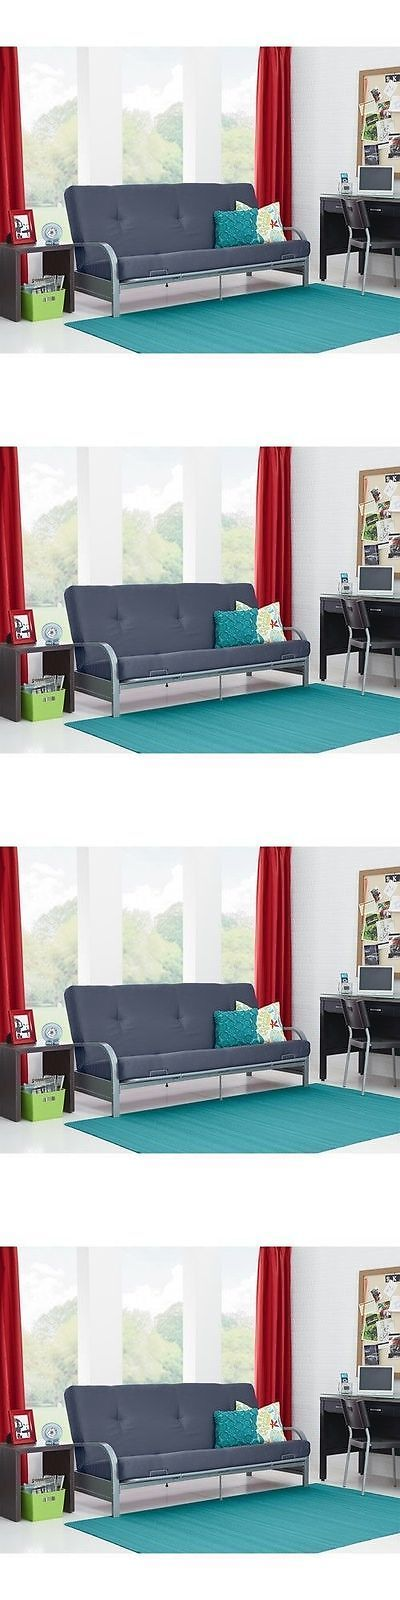 Futons Frames and Covers 131579: Futon Sofa Bed With Mattress Convertible Sleeper Lounger Dorm Couch Seat Folding -> BUY IT NOW ONLY: $118.24 on eBay!